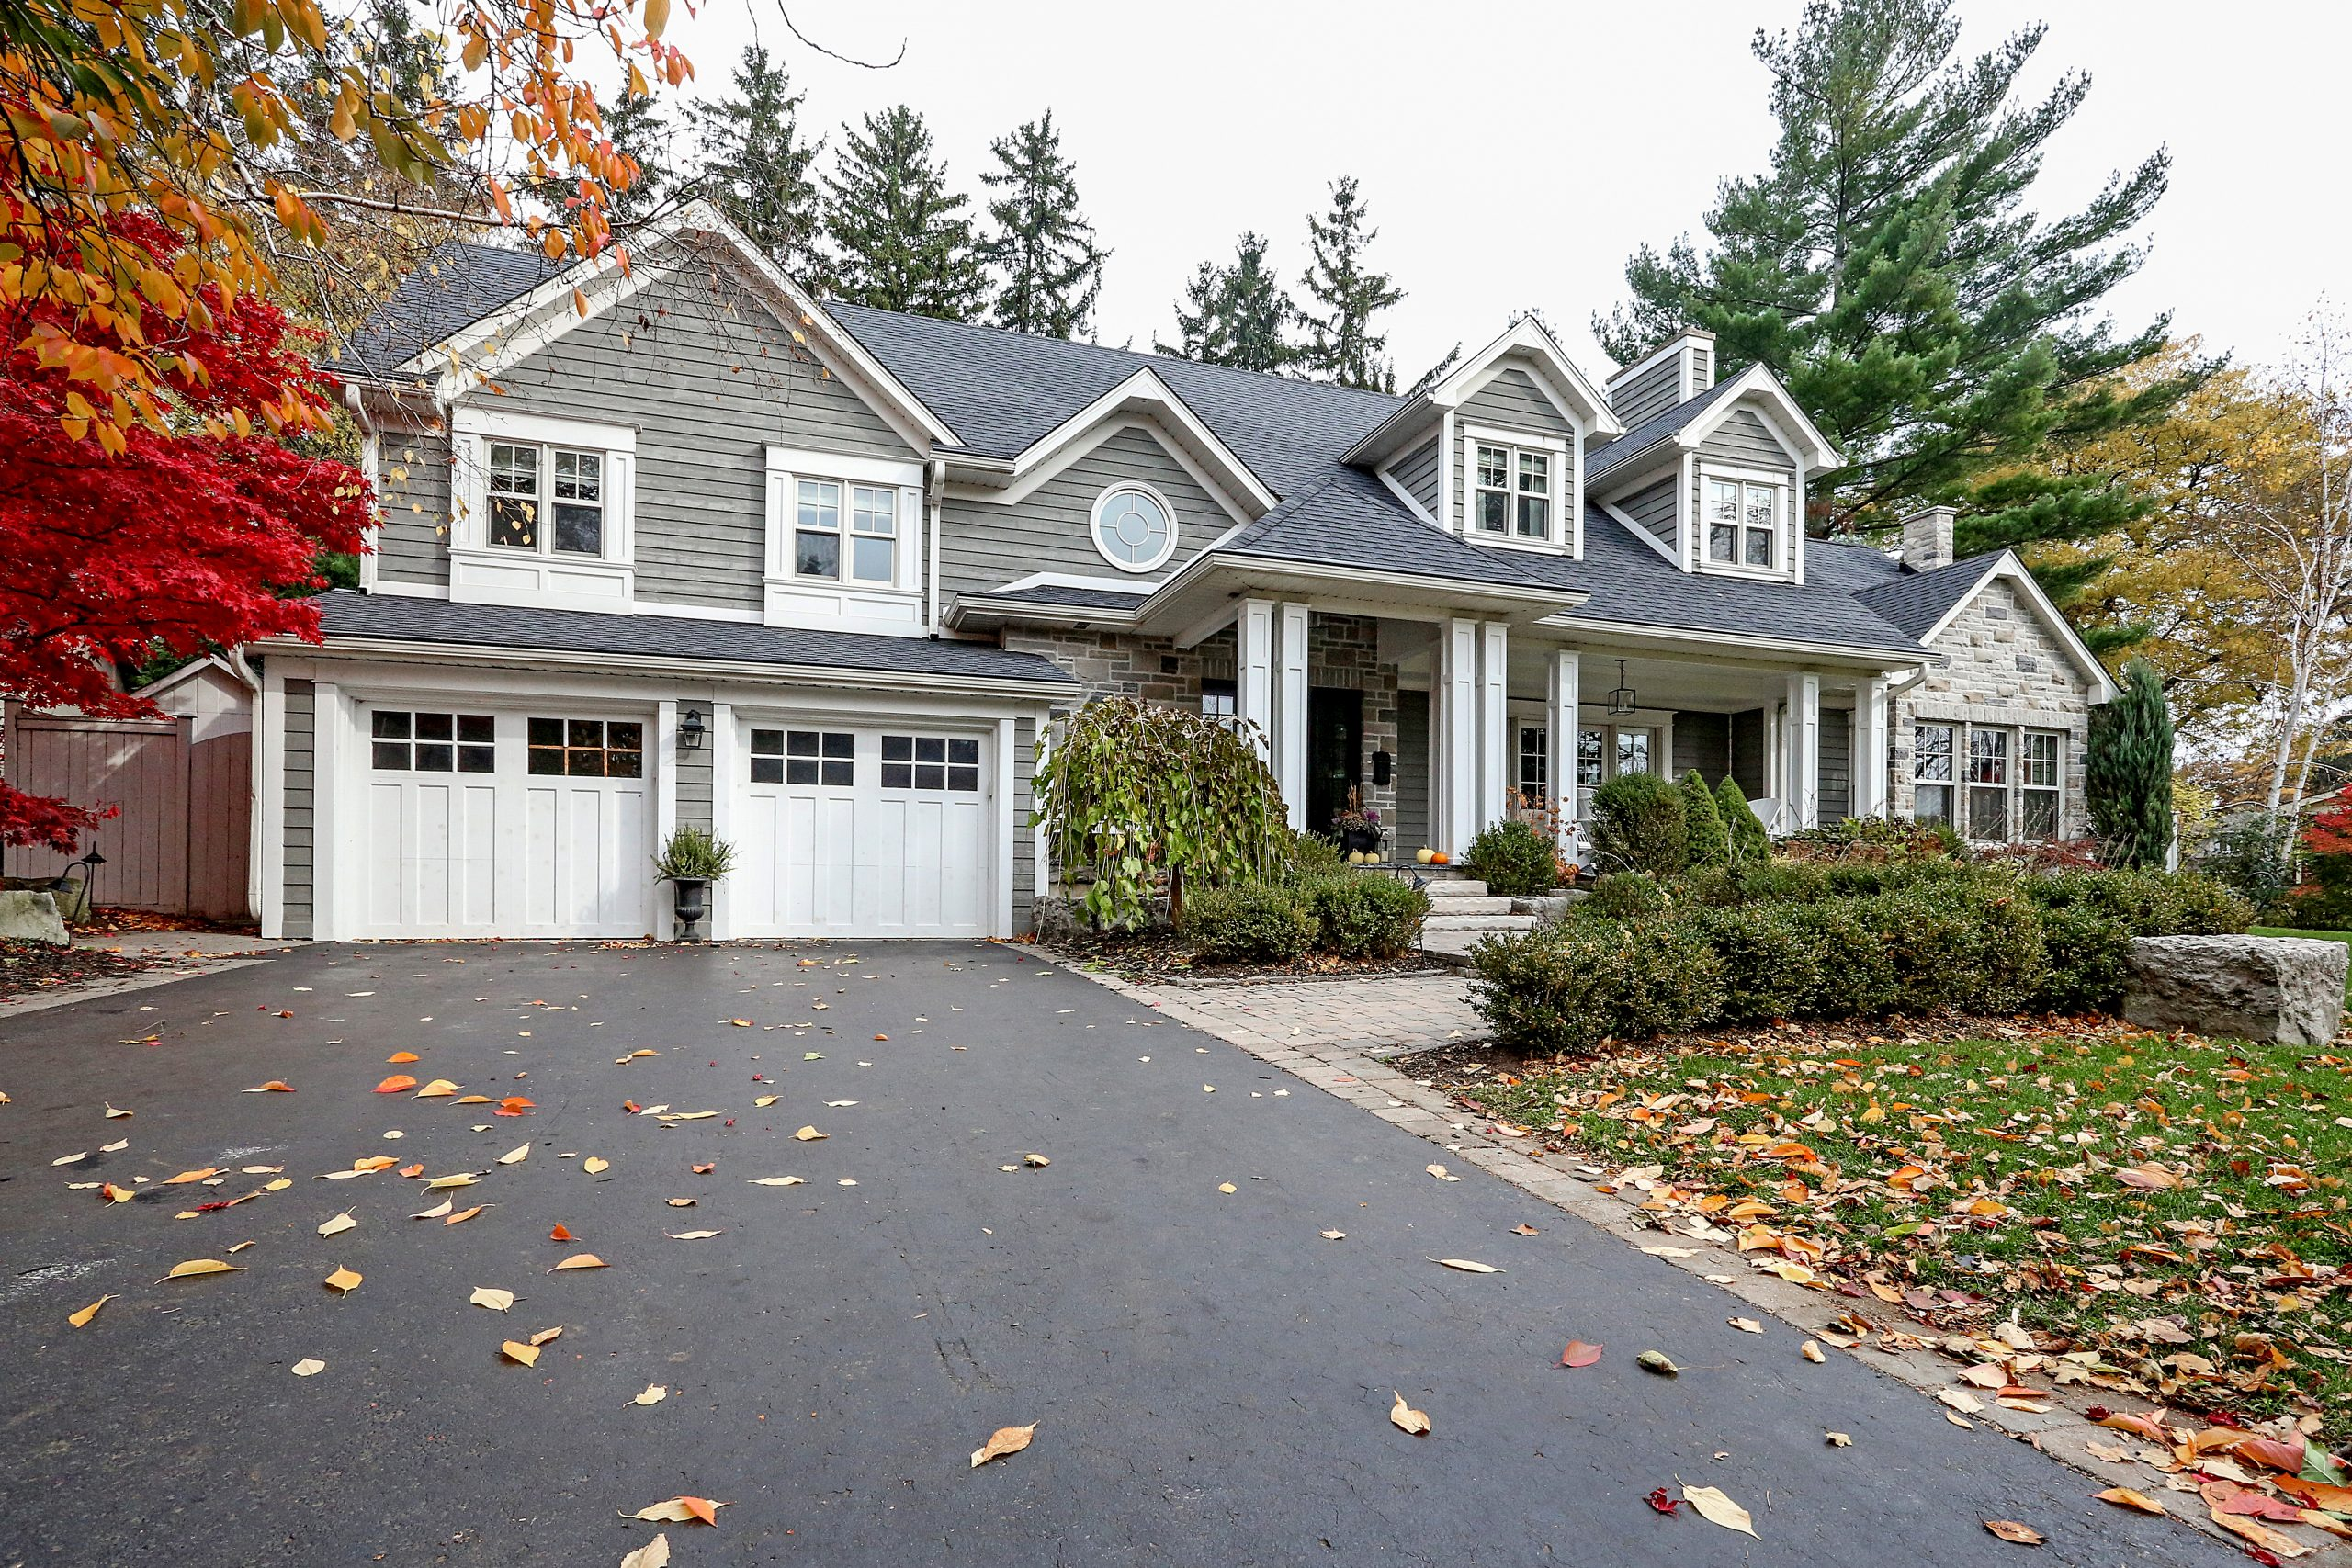 A photo of a home's exterior, focusing on the roof and gutters, as this is an important step to take in preparing your home for summer.